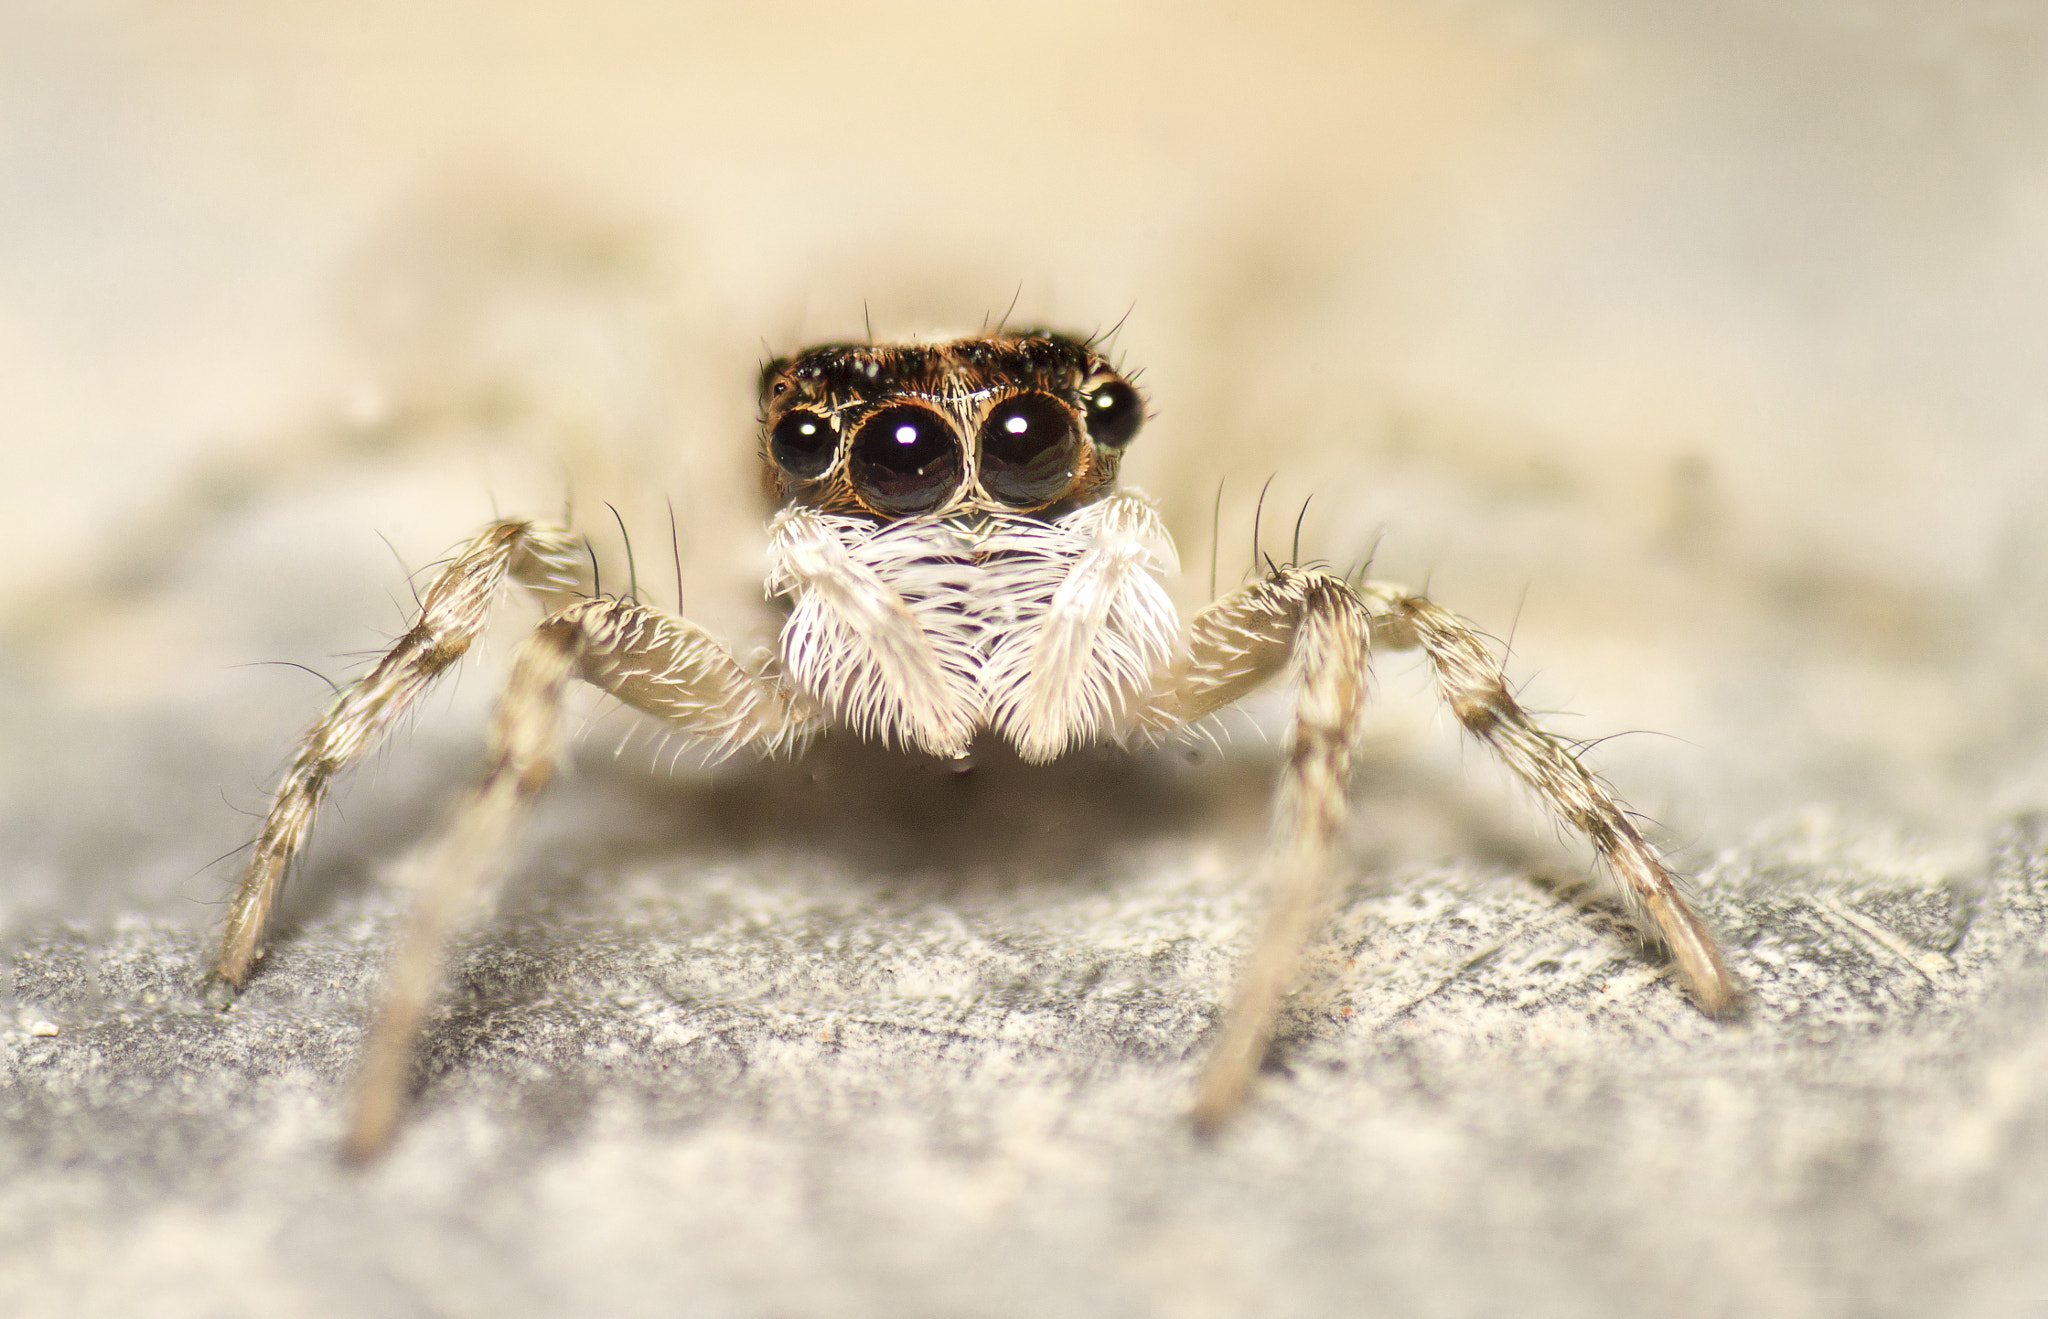 Photograph serious jumpy spider by Can Dogan on 500px